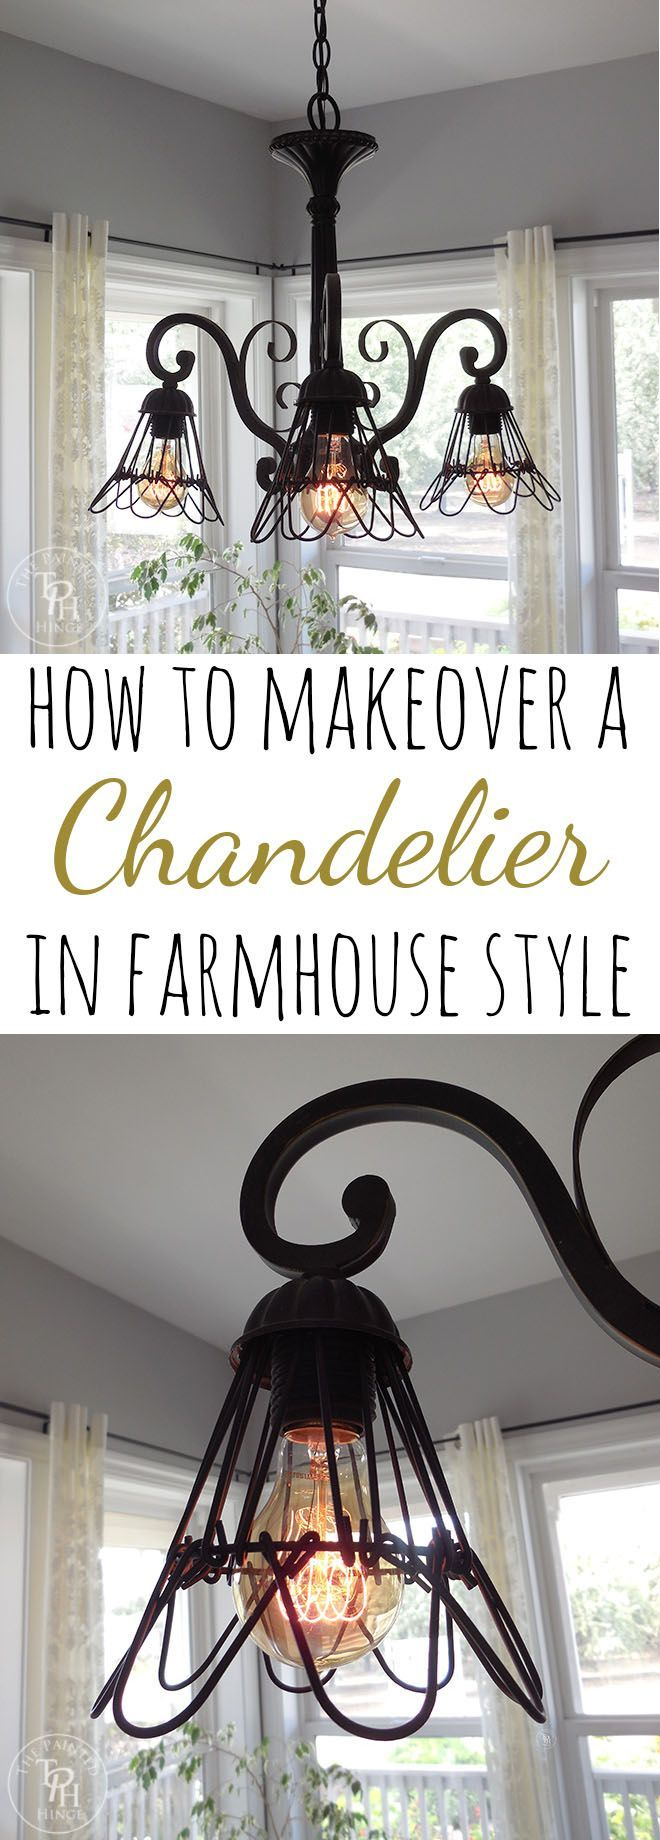 How To Makeover A Chandelier In Farmhouse Style! Easy DIY tutorial to makeover a boring old chandelier in eye-catching farmhouse style!